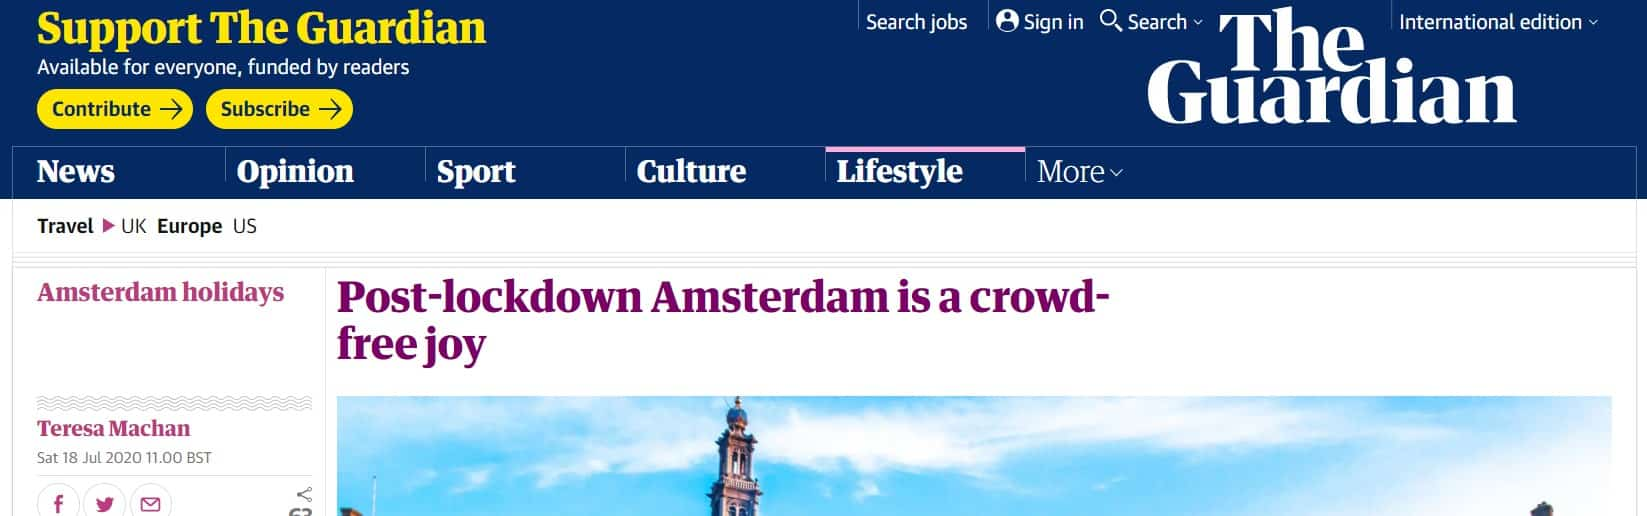 When you offer The Guardian a free trip to Amsterdam